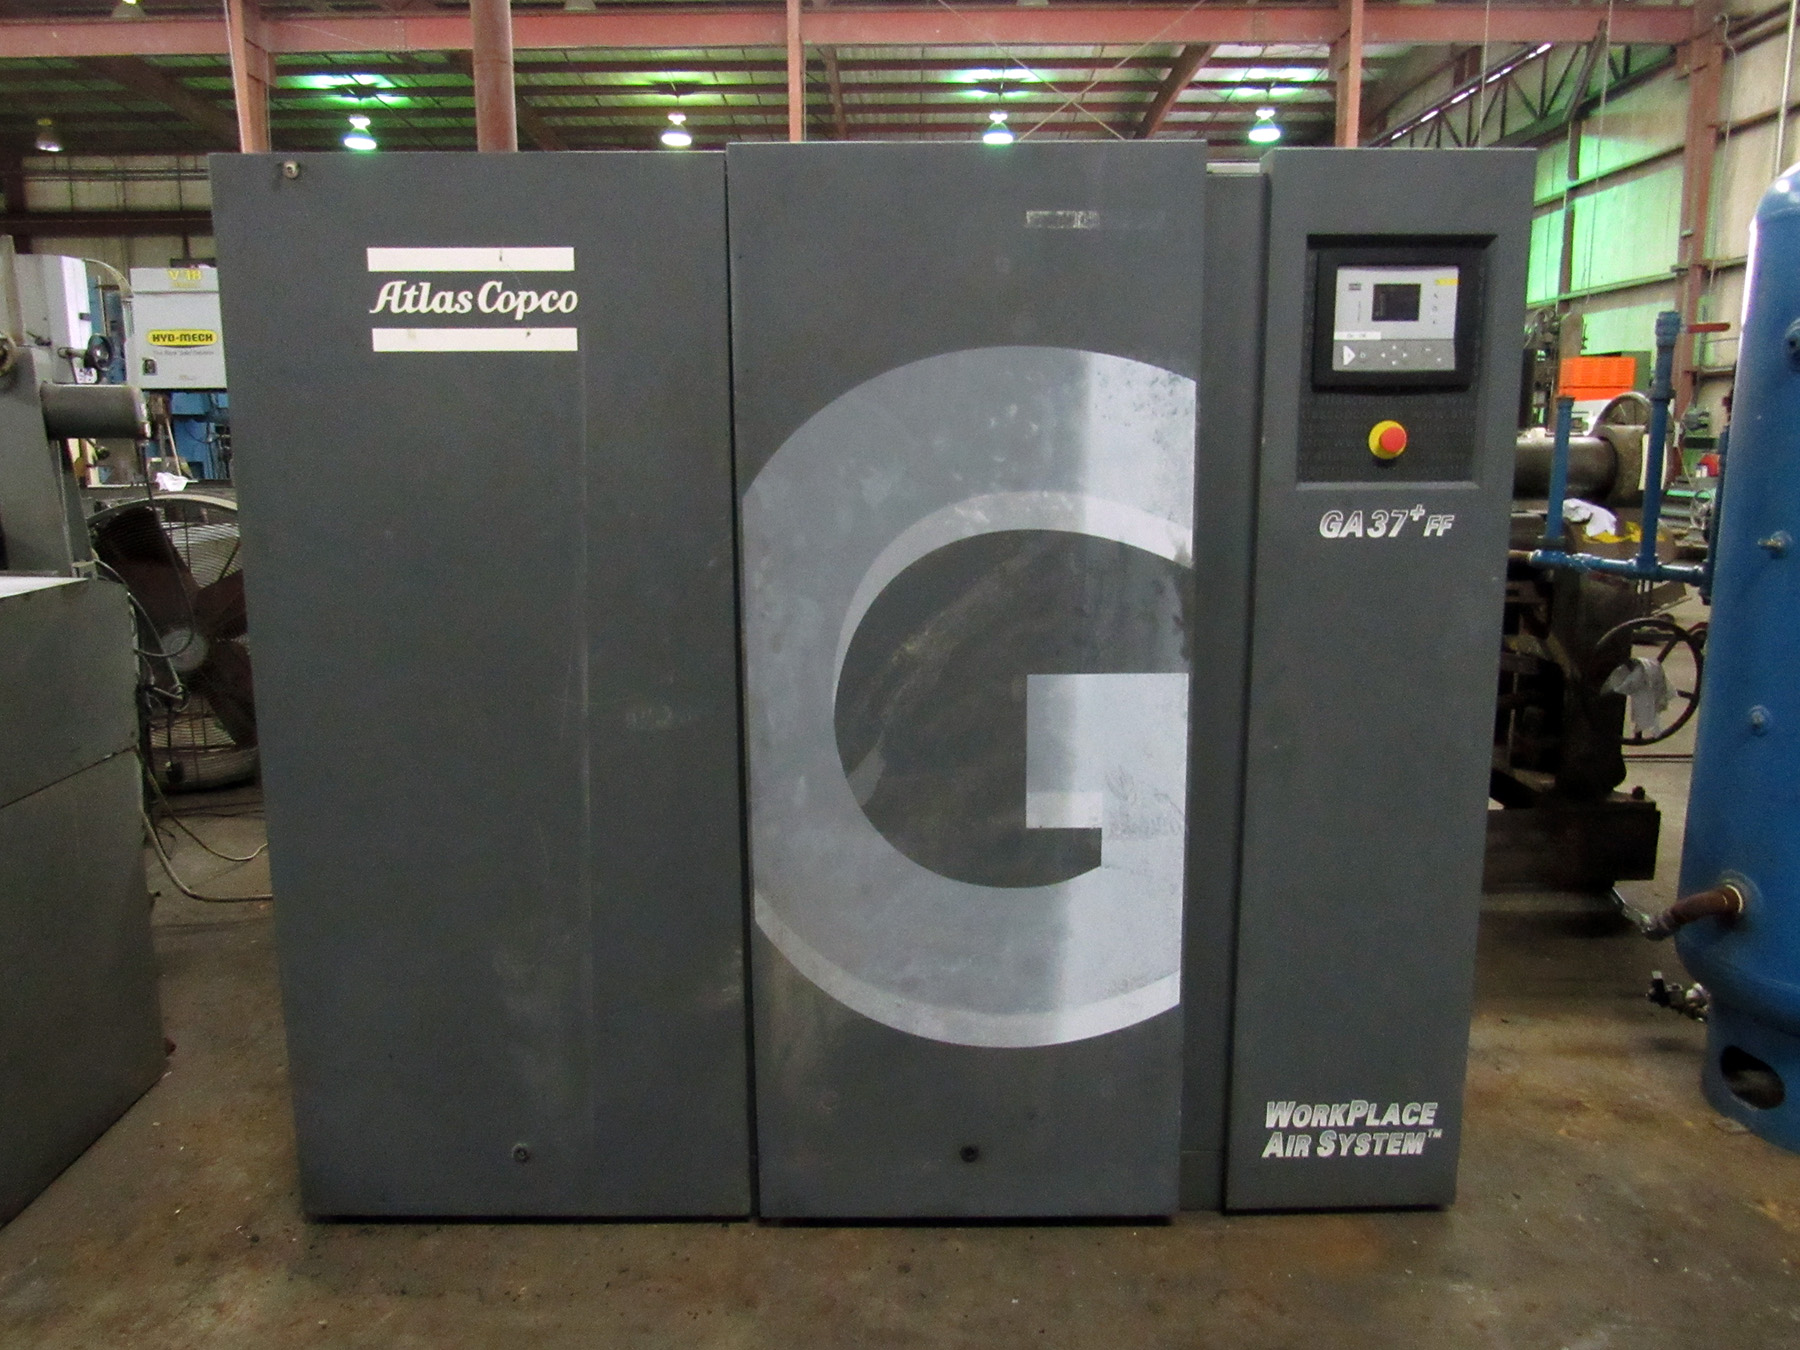 USED, ATLAS COPCO MODEL GA37+FF OIL-INJECTED ROTARY SCREW AIR COMPRESSOR